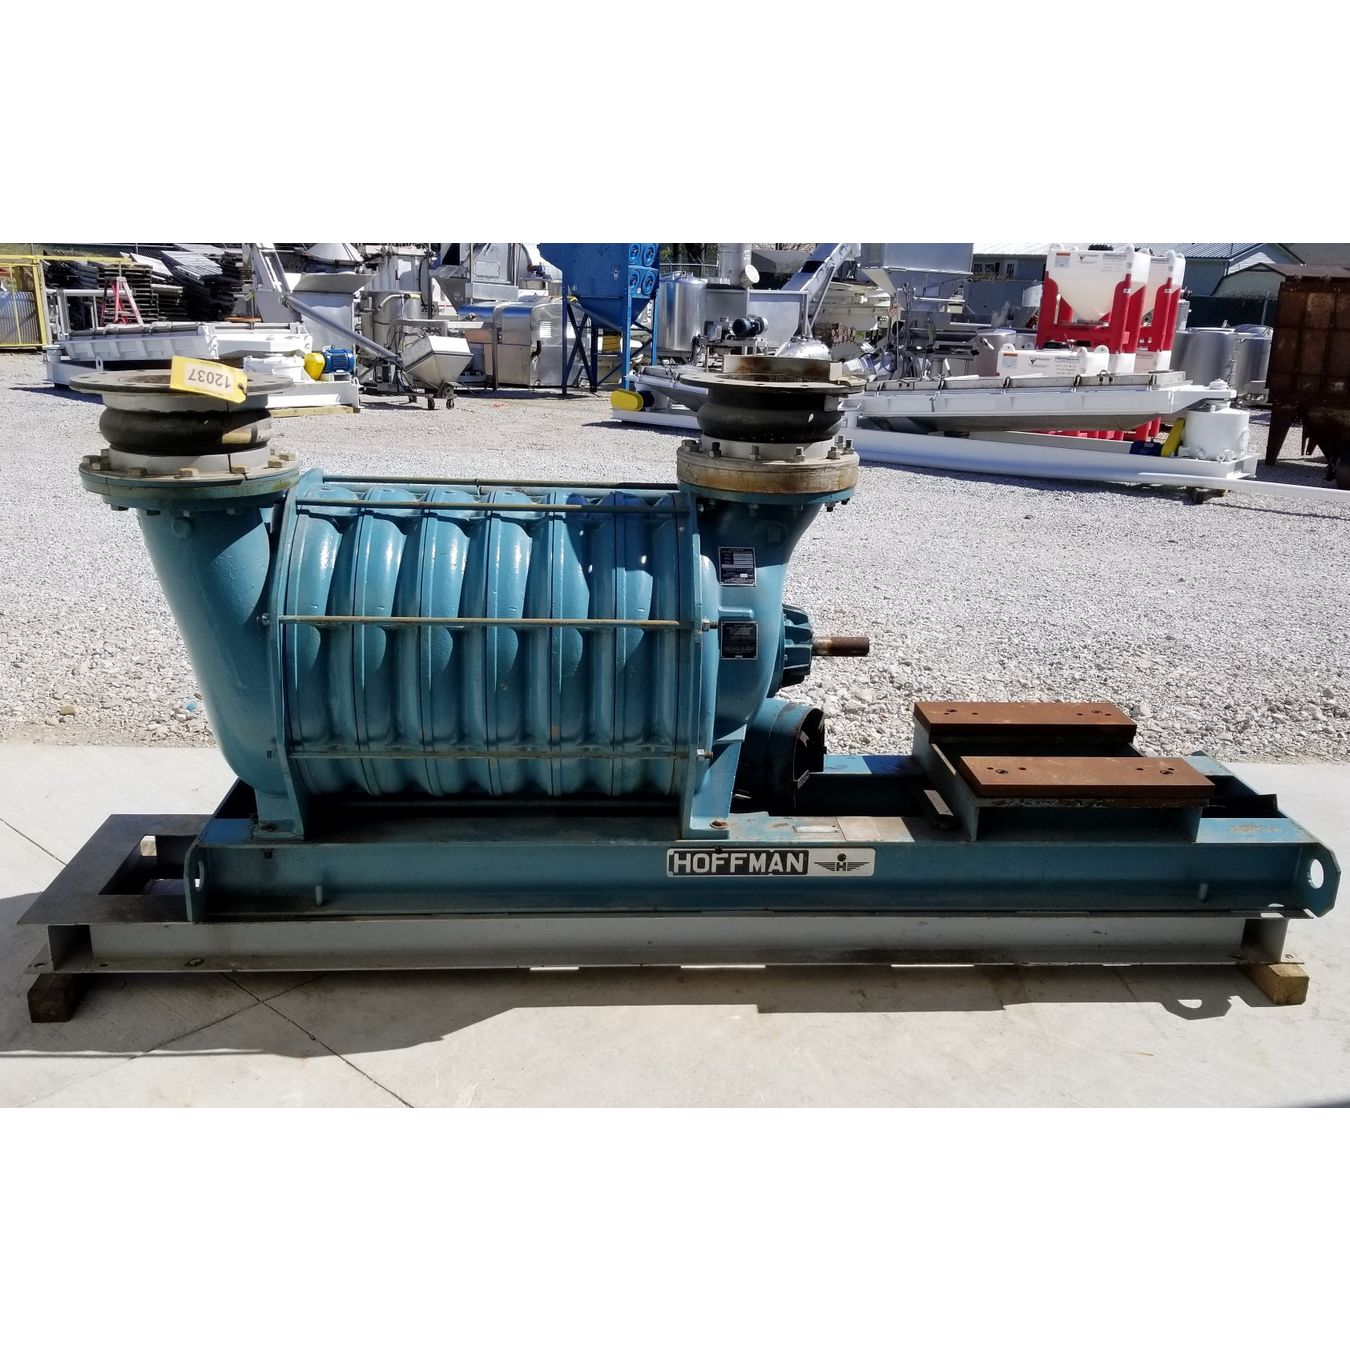 Hoffman Centrifugal Blower : Used hoffman centrifugal multistage blower model a